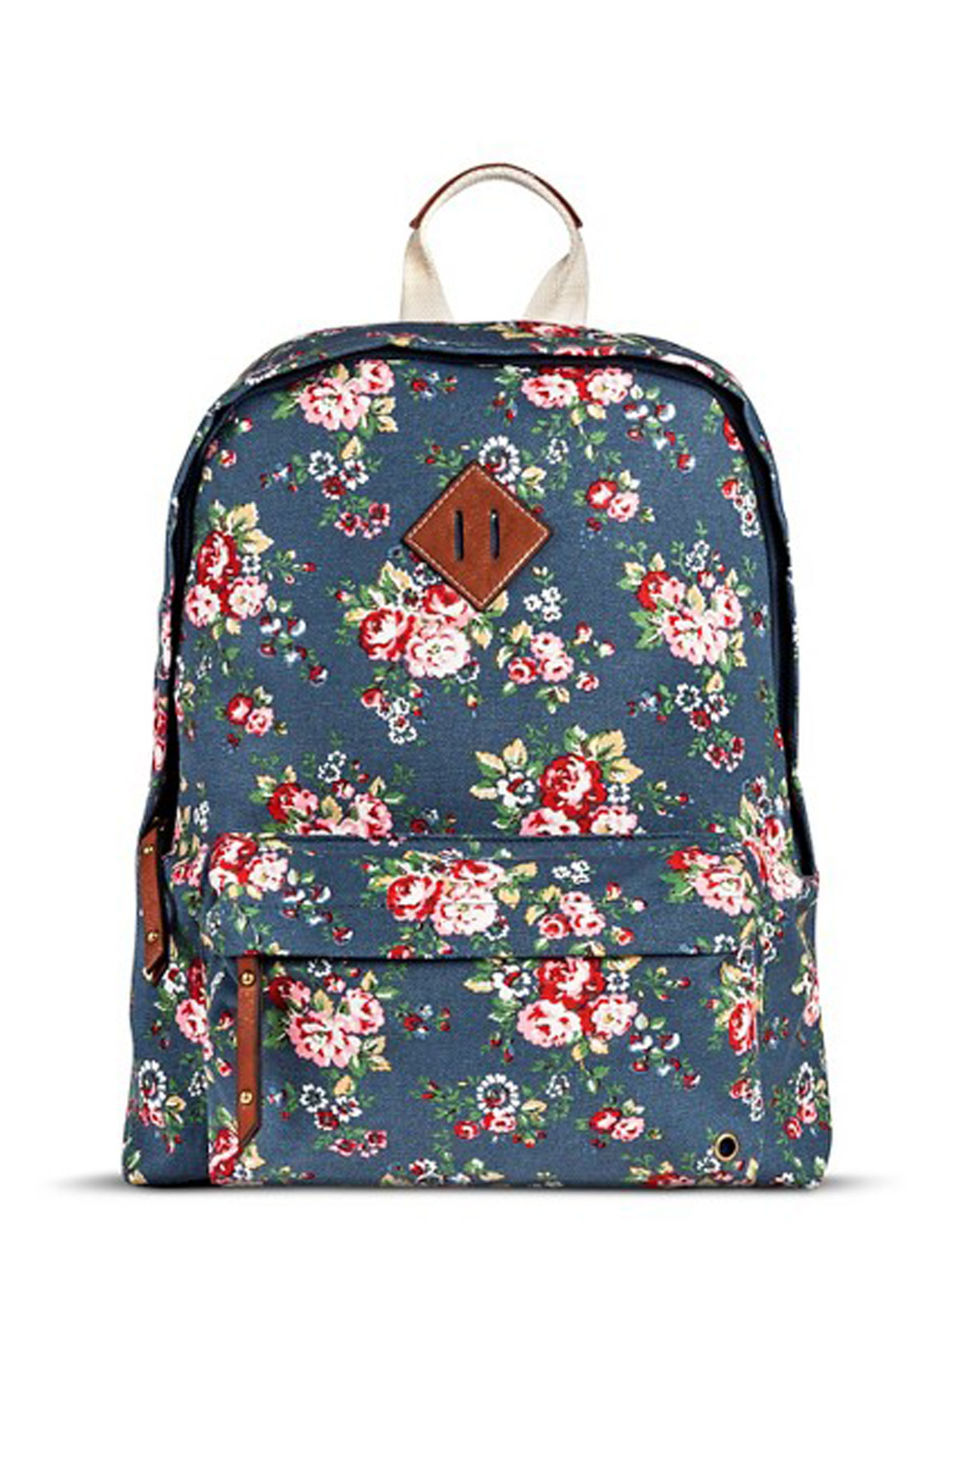 Backpacks Teenage Girl 1RyNsz2Z